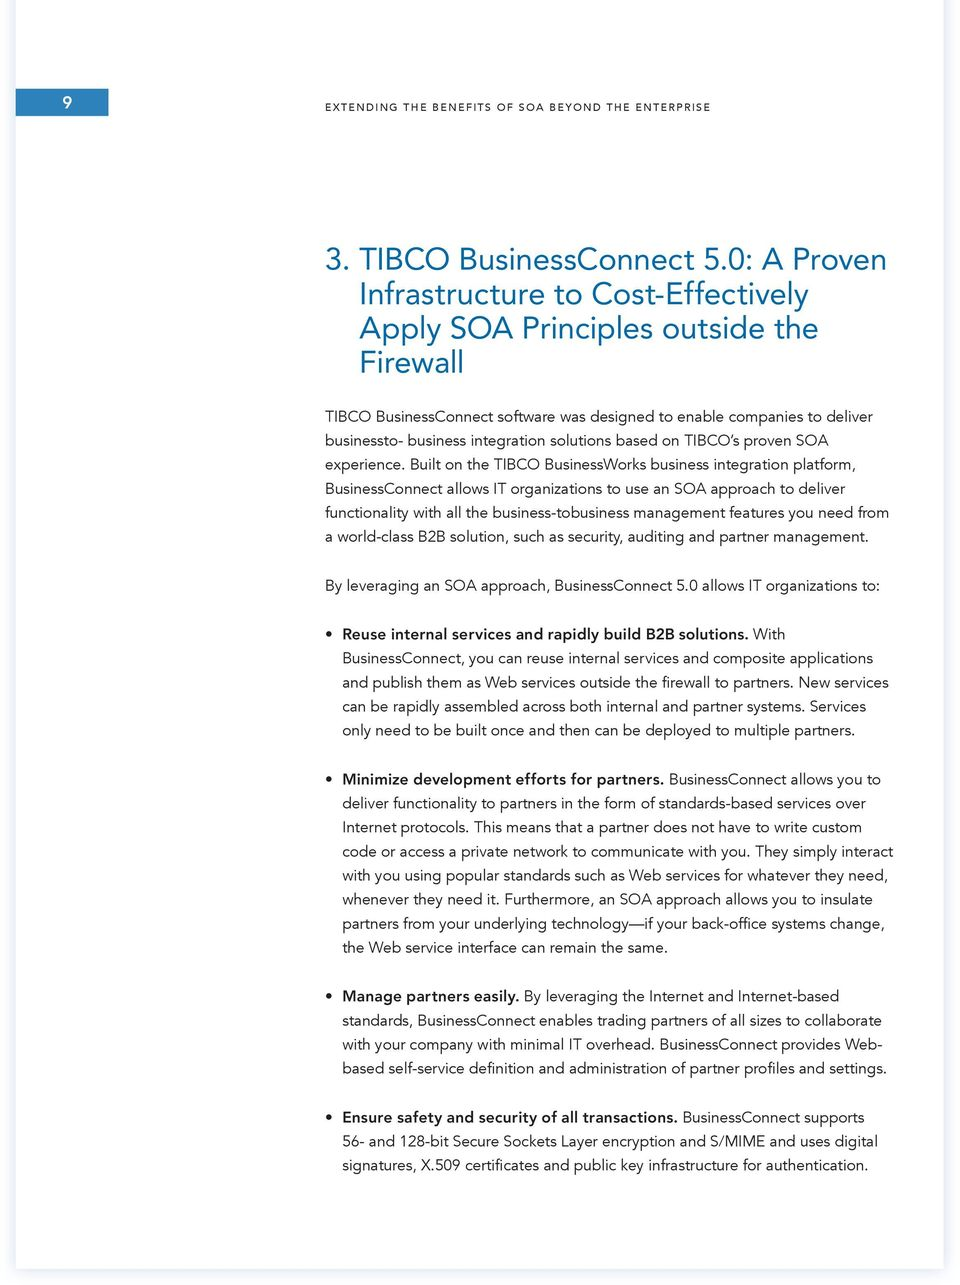 solutions based on TIBCO s proven SOA experience.